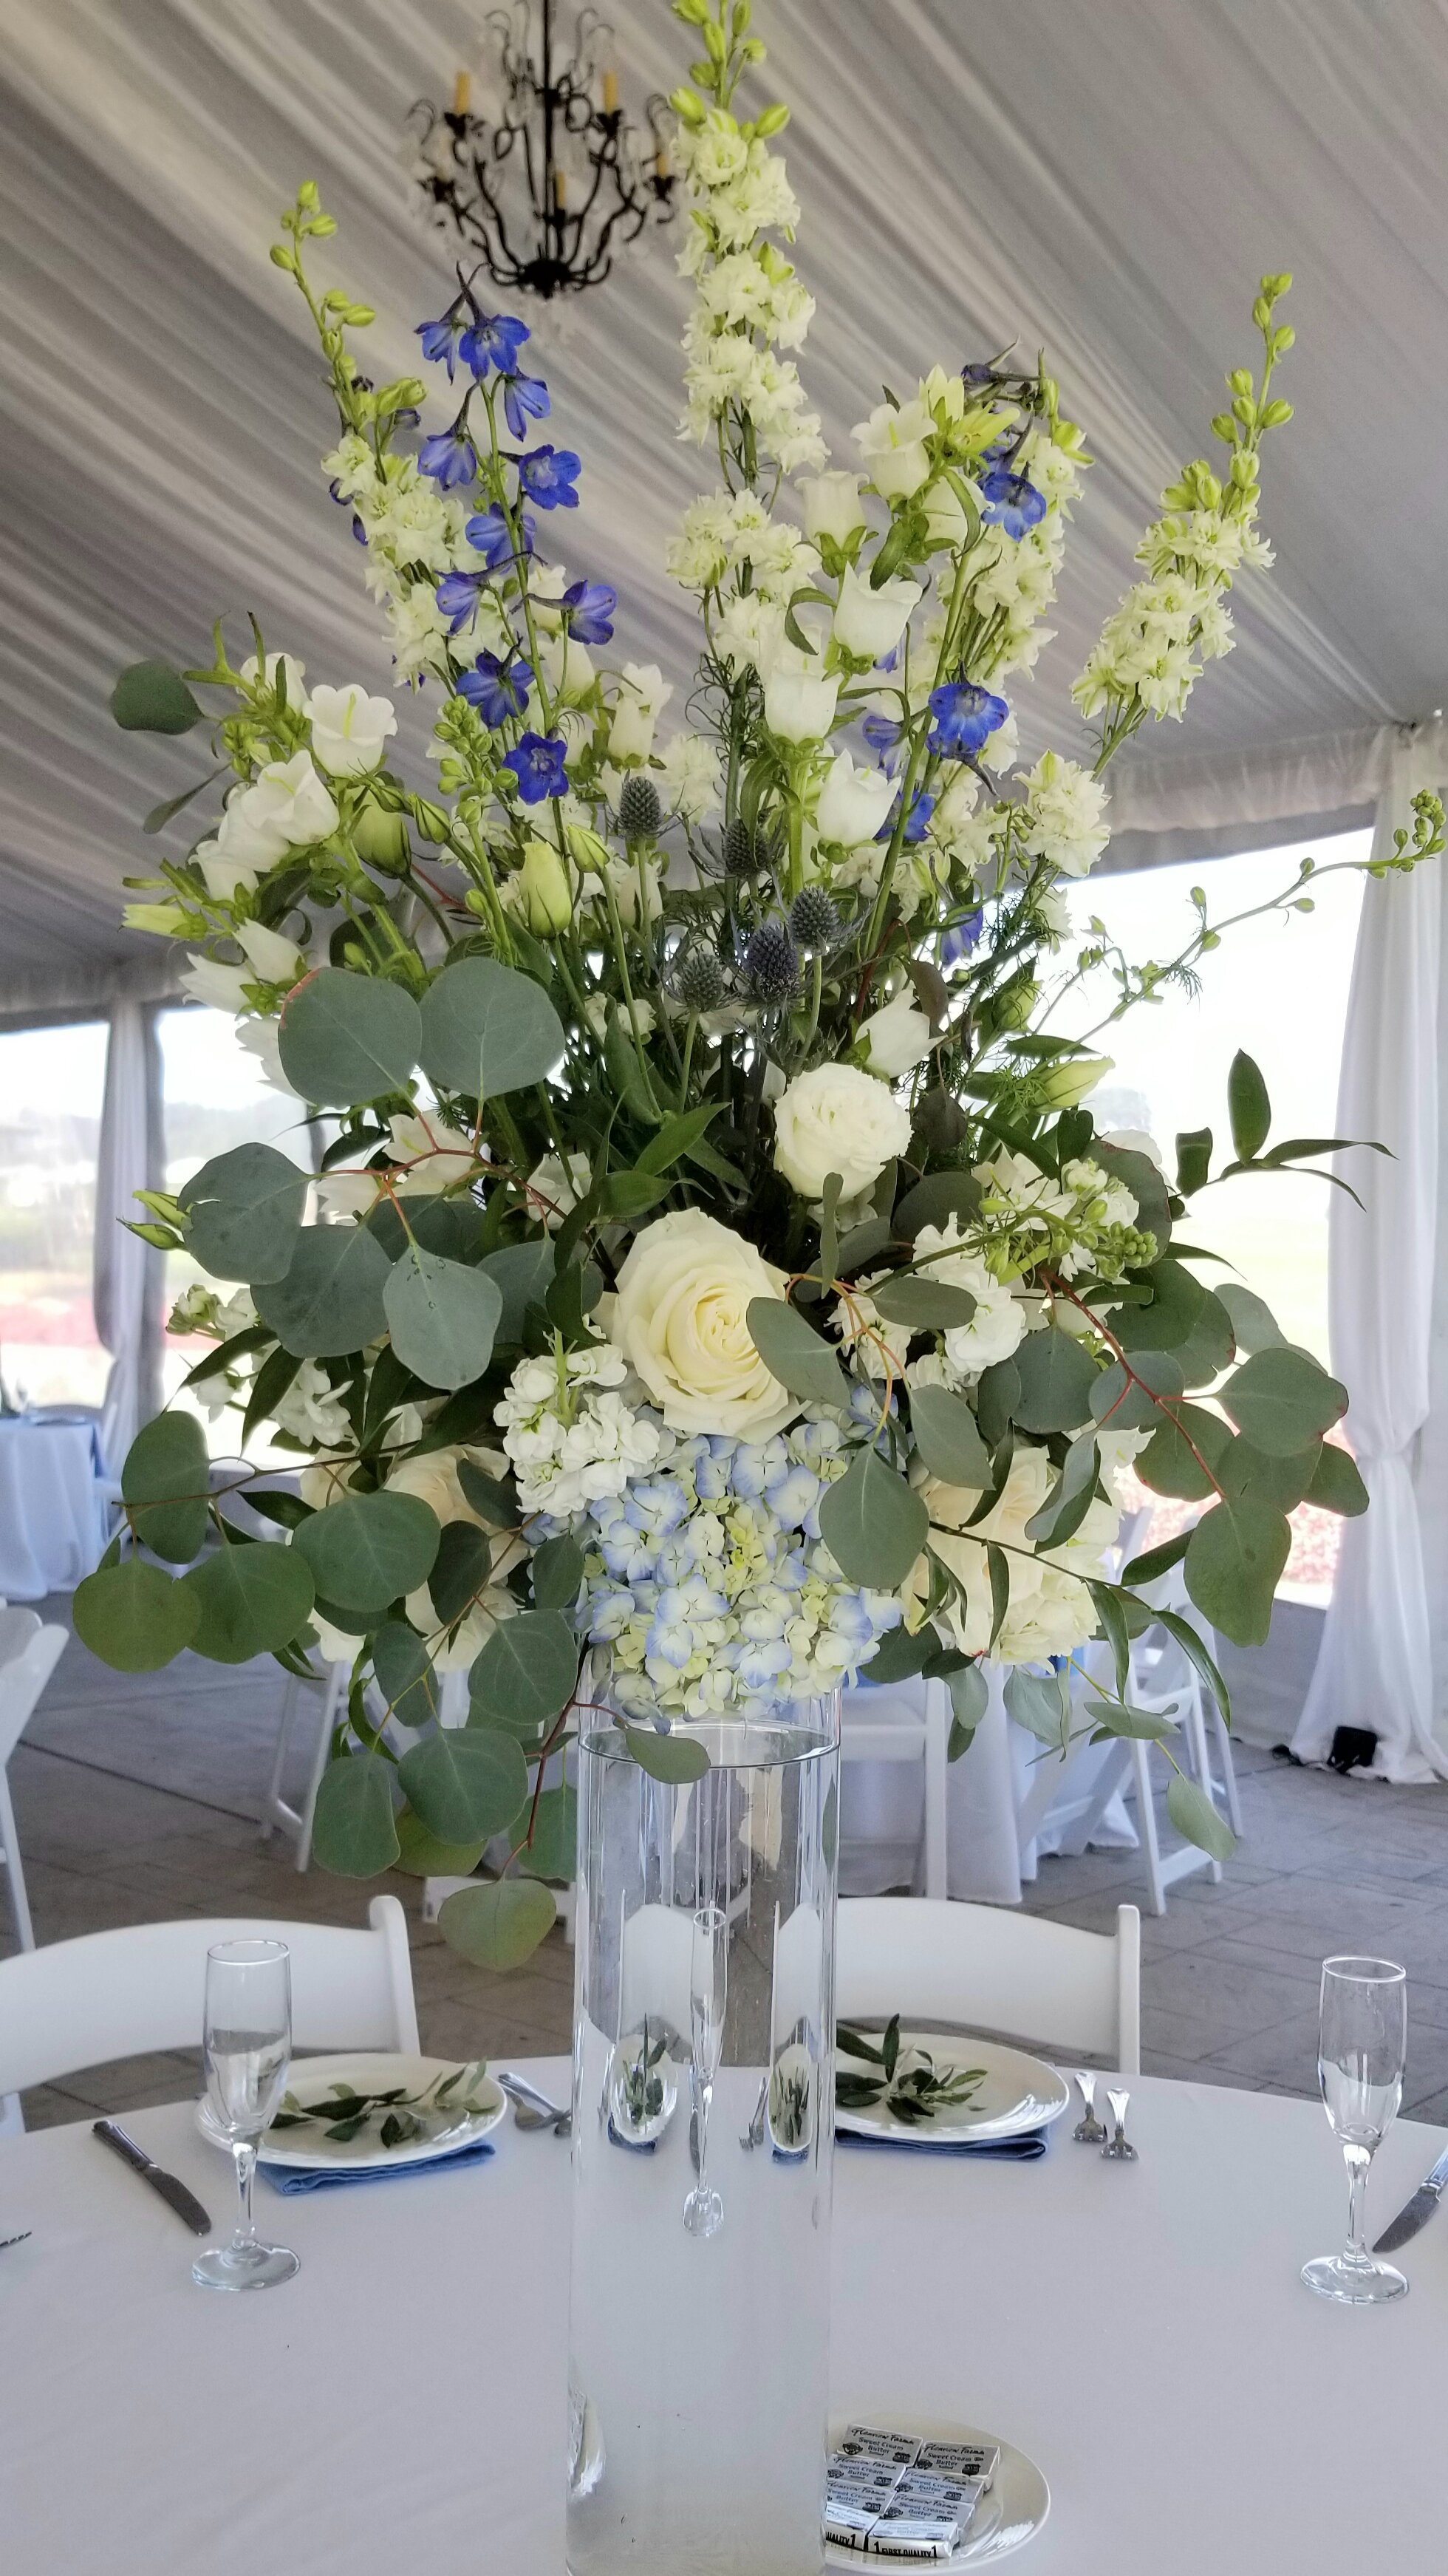 Tall table centerpiece featuring white and blue flowers, Eagle Vines Golf Course